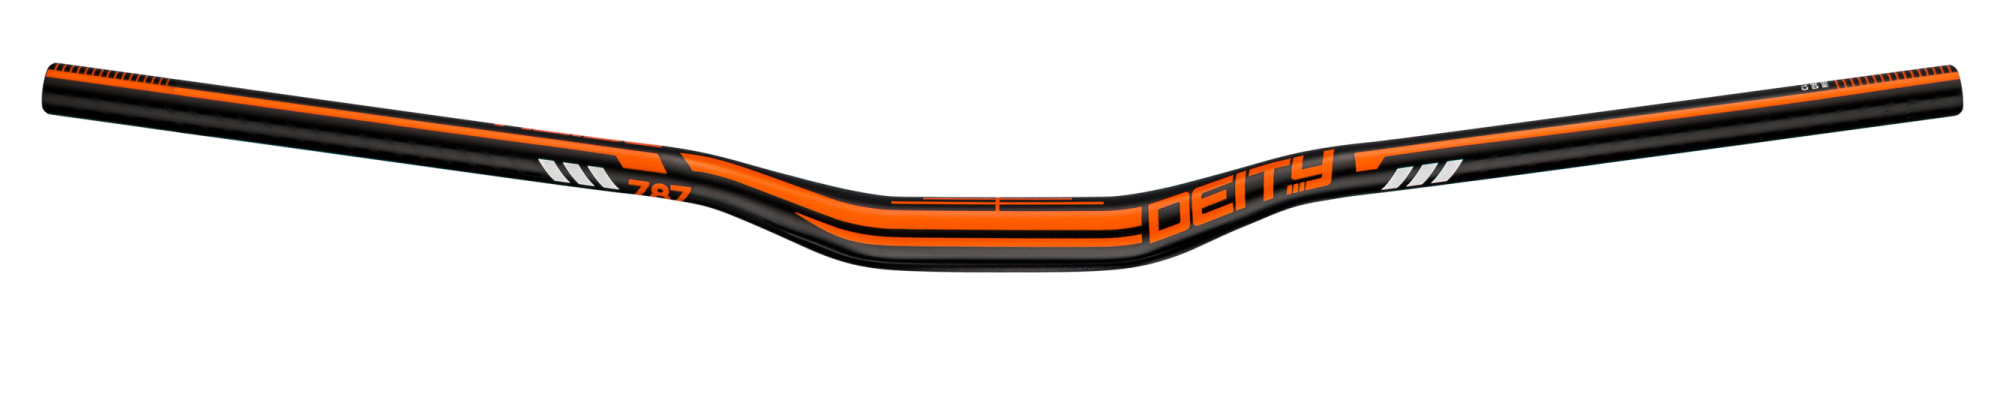 DEITY SKYLINE HANDLEBAR 25MM